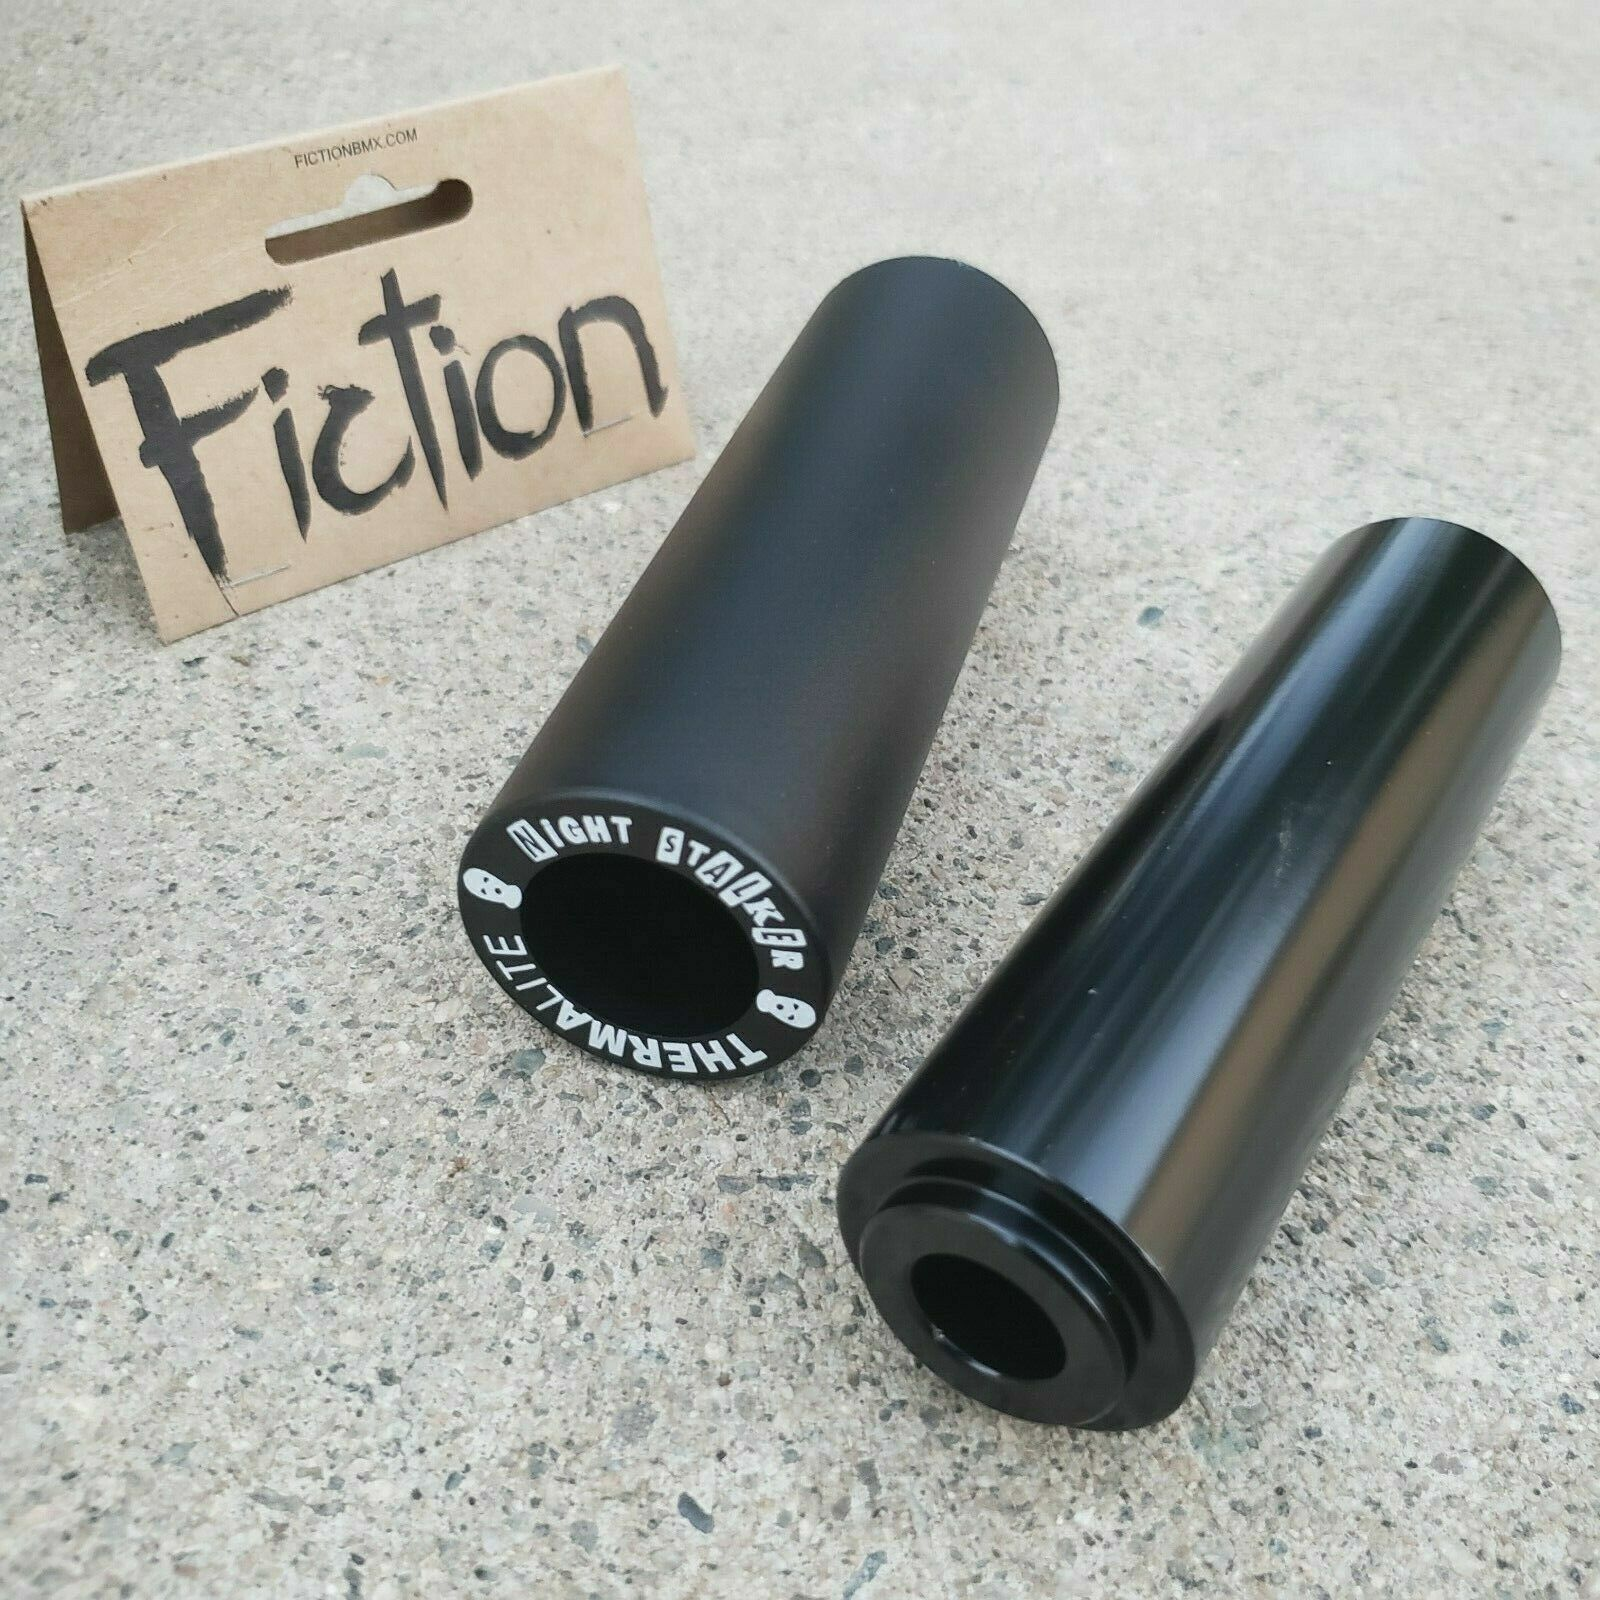 1 PAIR FICTION NIGHT STALKER PC PEG 3/8 14MM BMX BIKE PEGS F